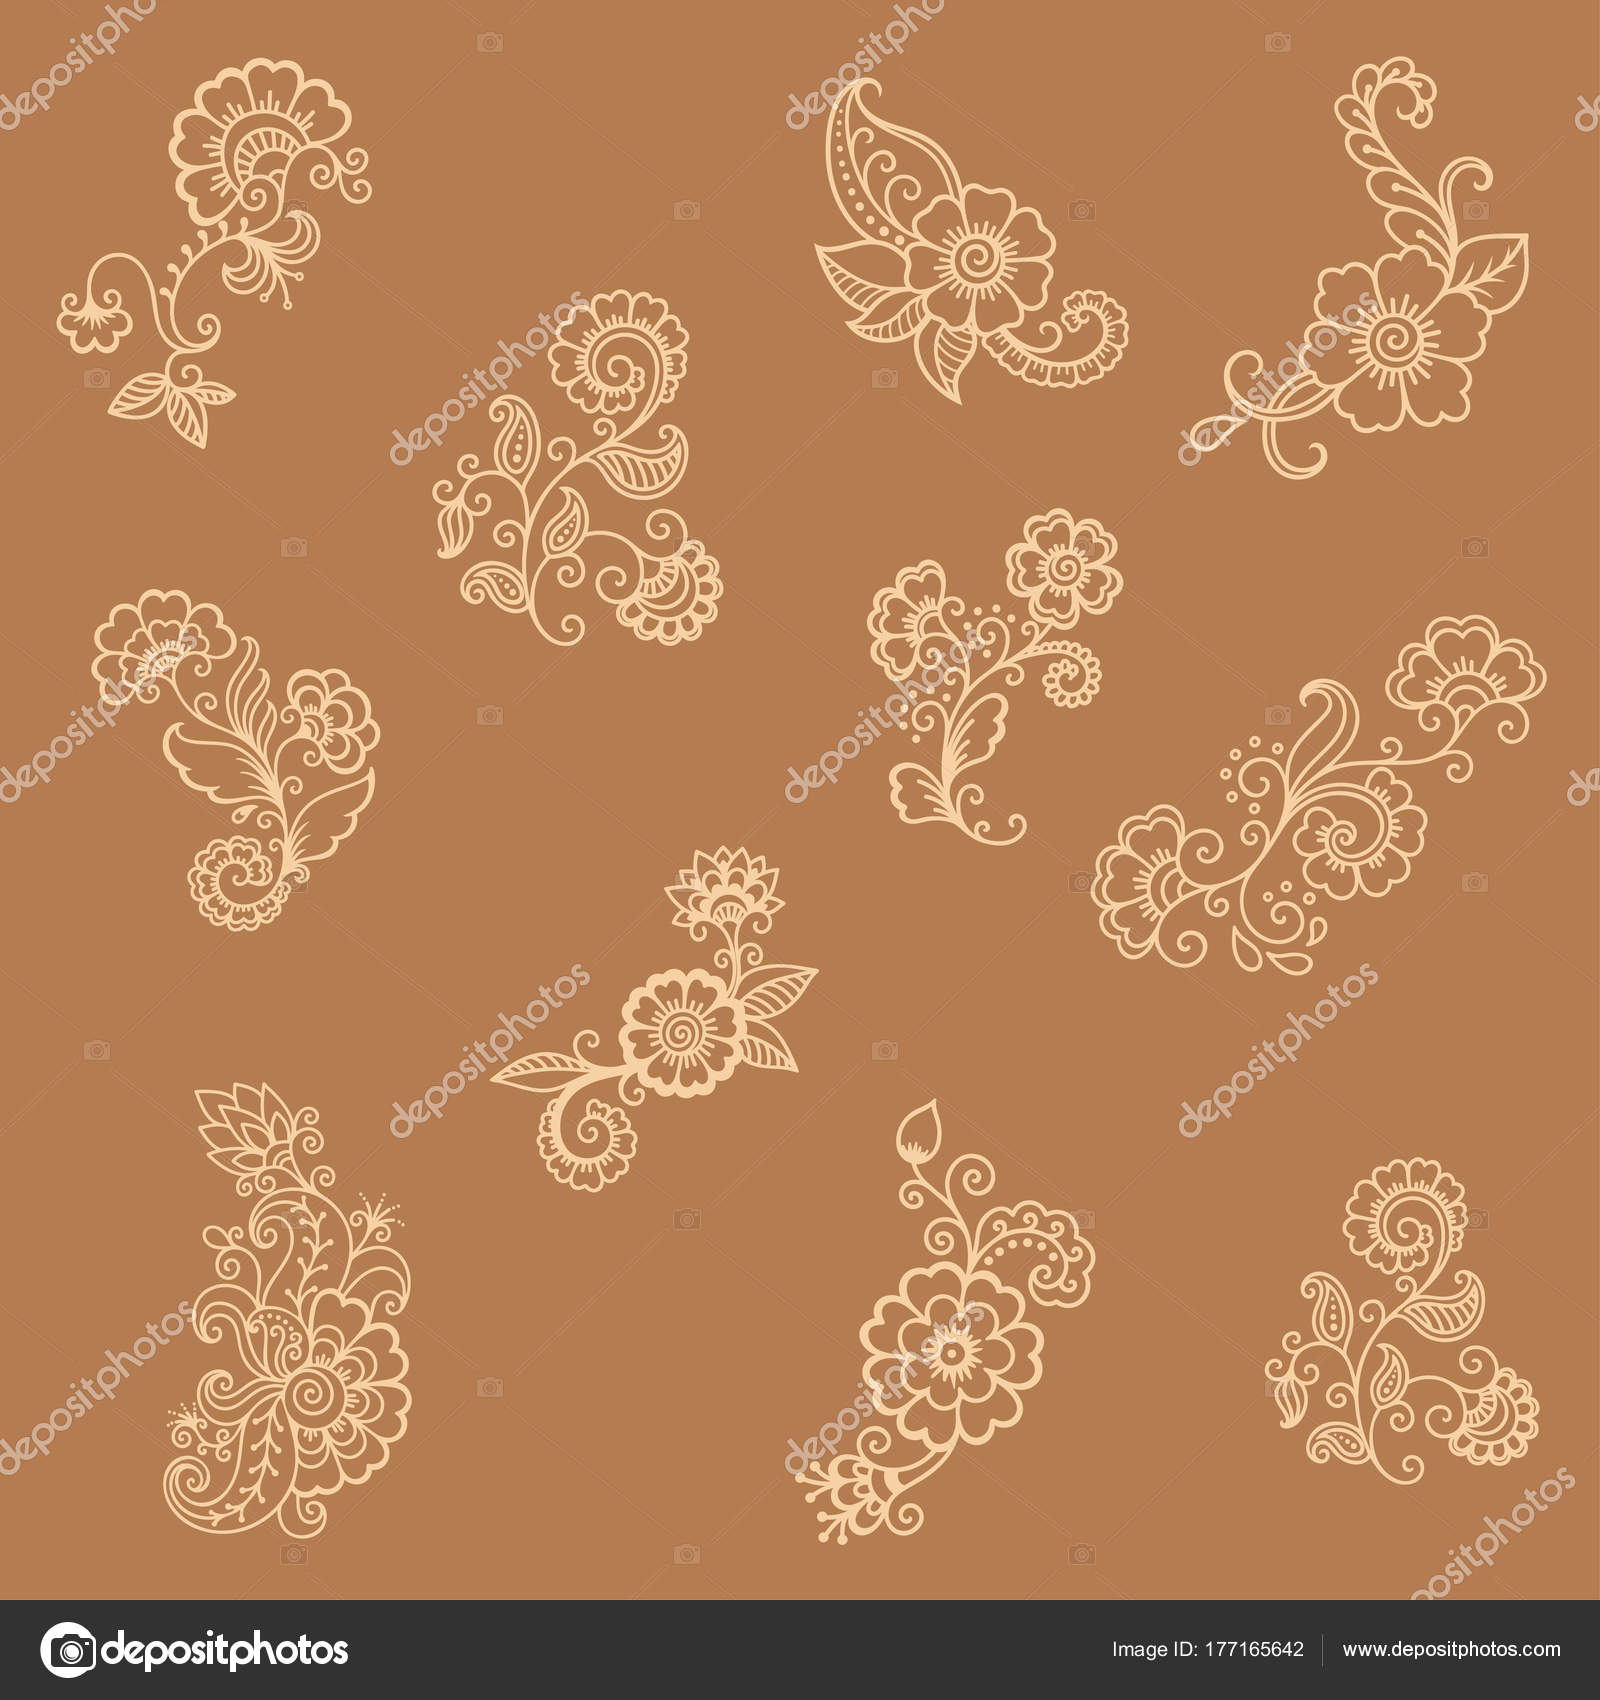 Henna Tattoo Flower Template Indian Style Ethnic Floral Paisley